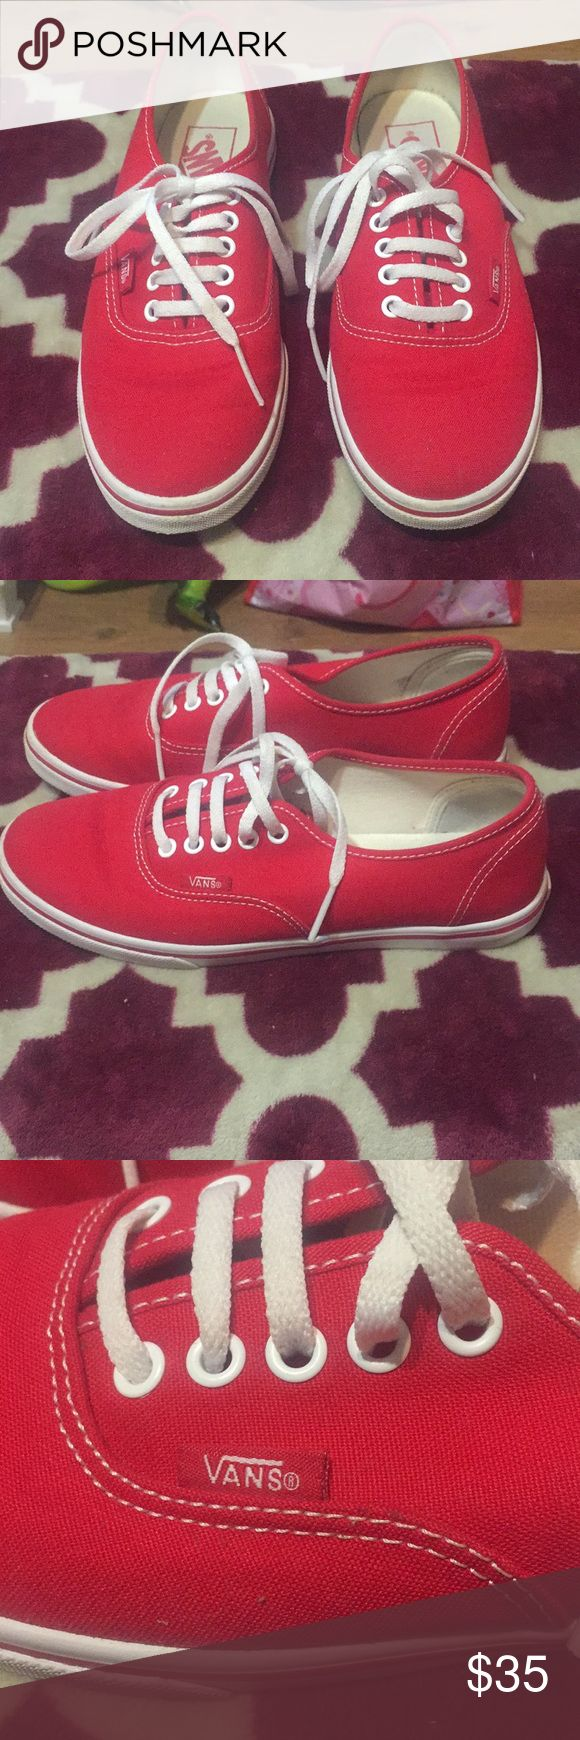 ***MAKE AN OFFER***Authentic Red Vans Authentic Red Vans Look brand new, worn maybe 2-3 times. Great shape.  Still have box that they came in. Vans Shoes Sneakers